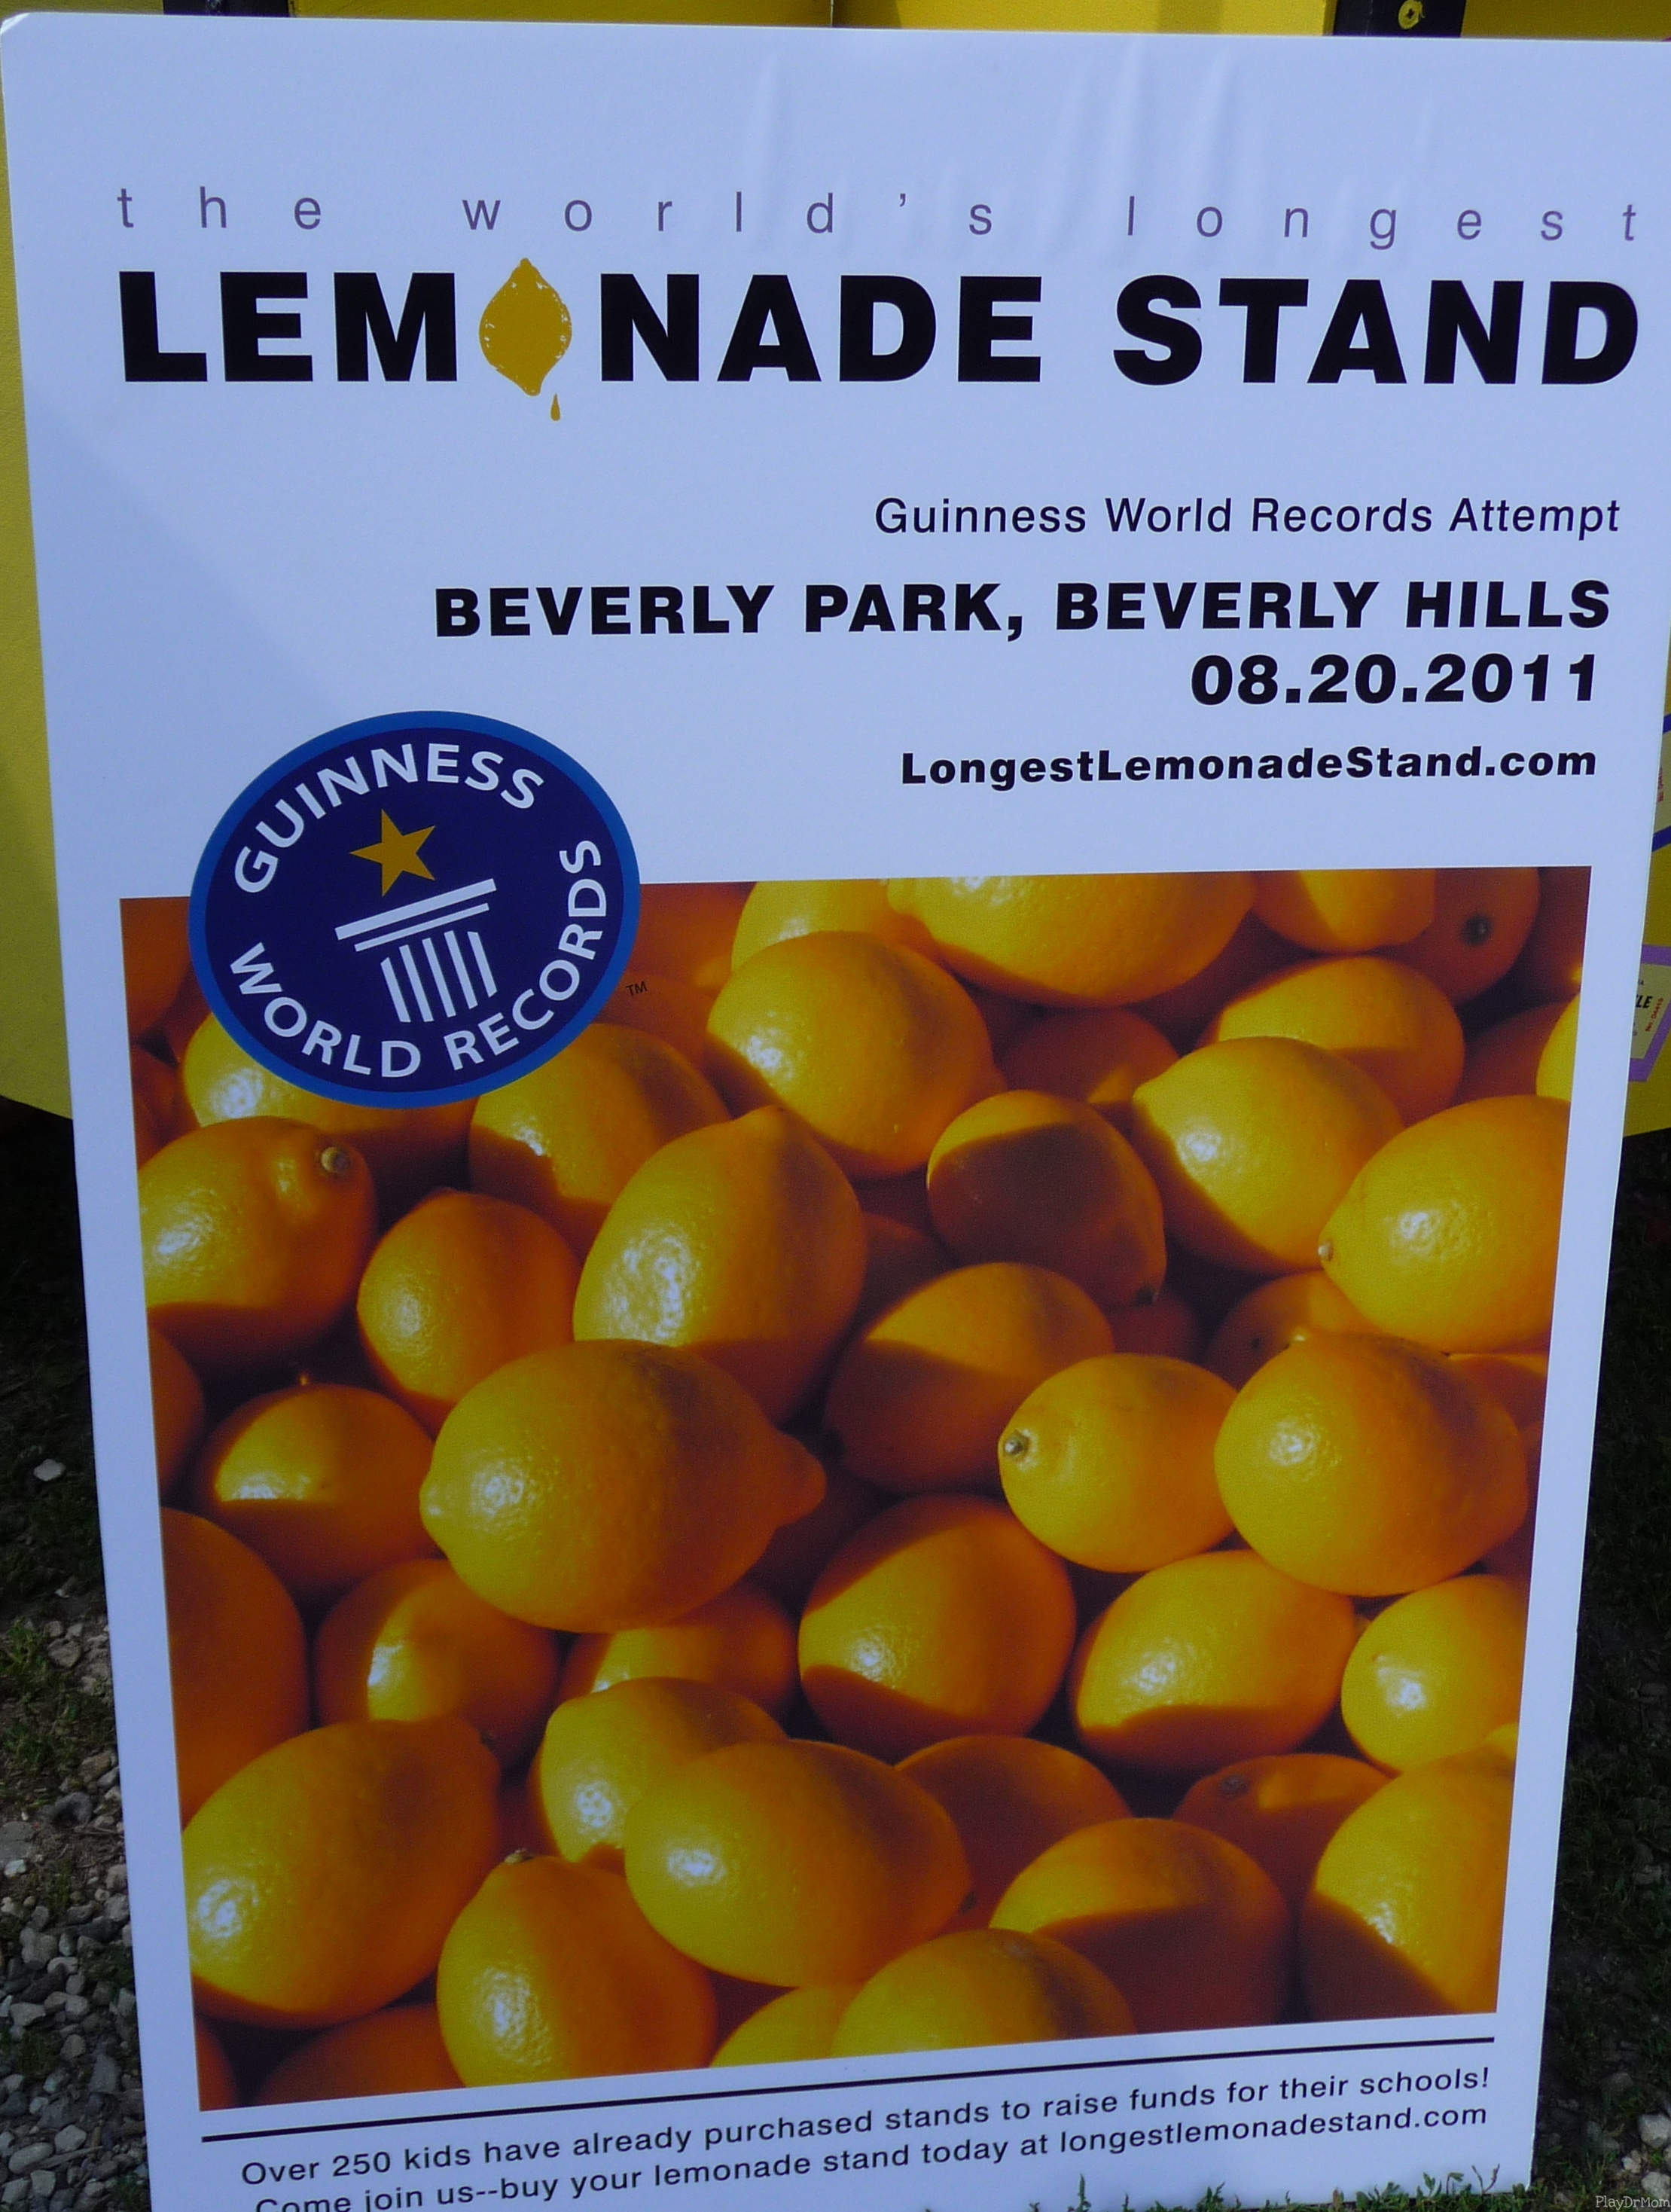 The Longest Lemonade Stand poster